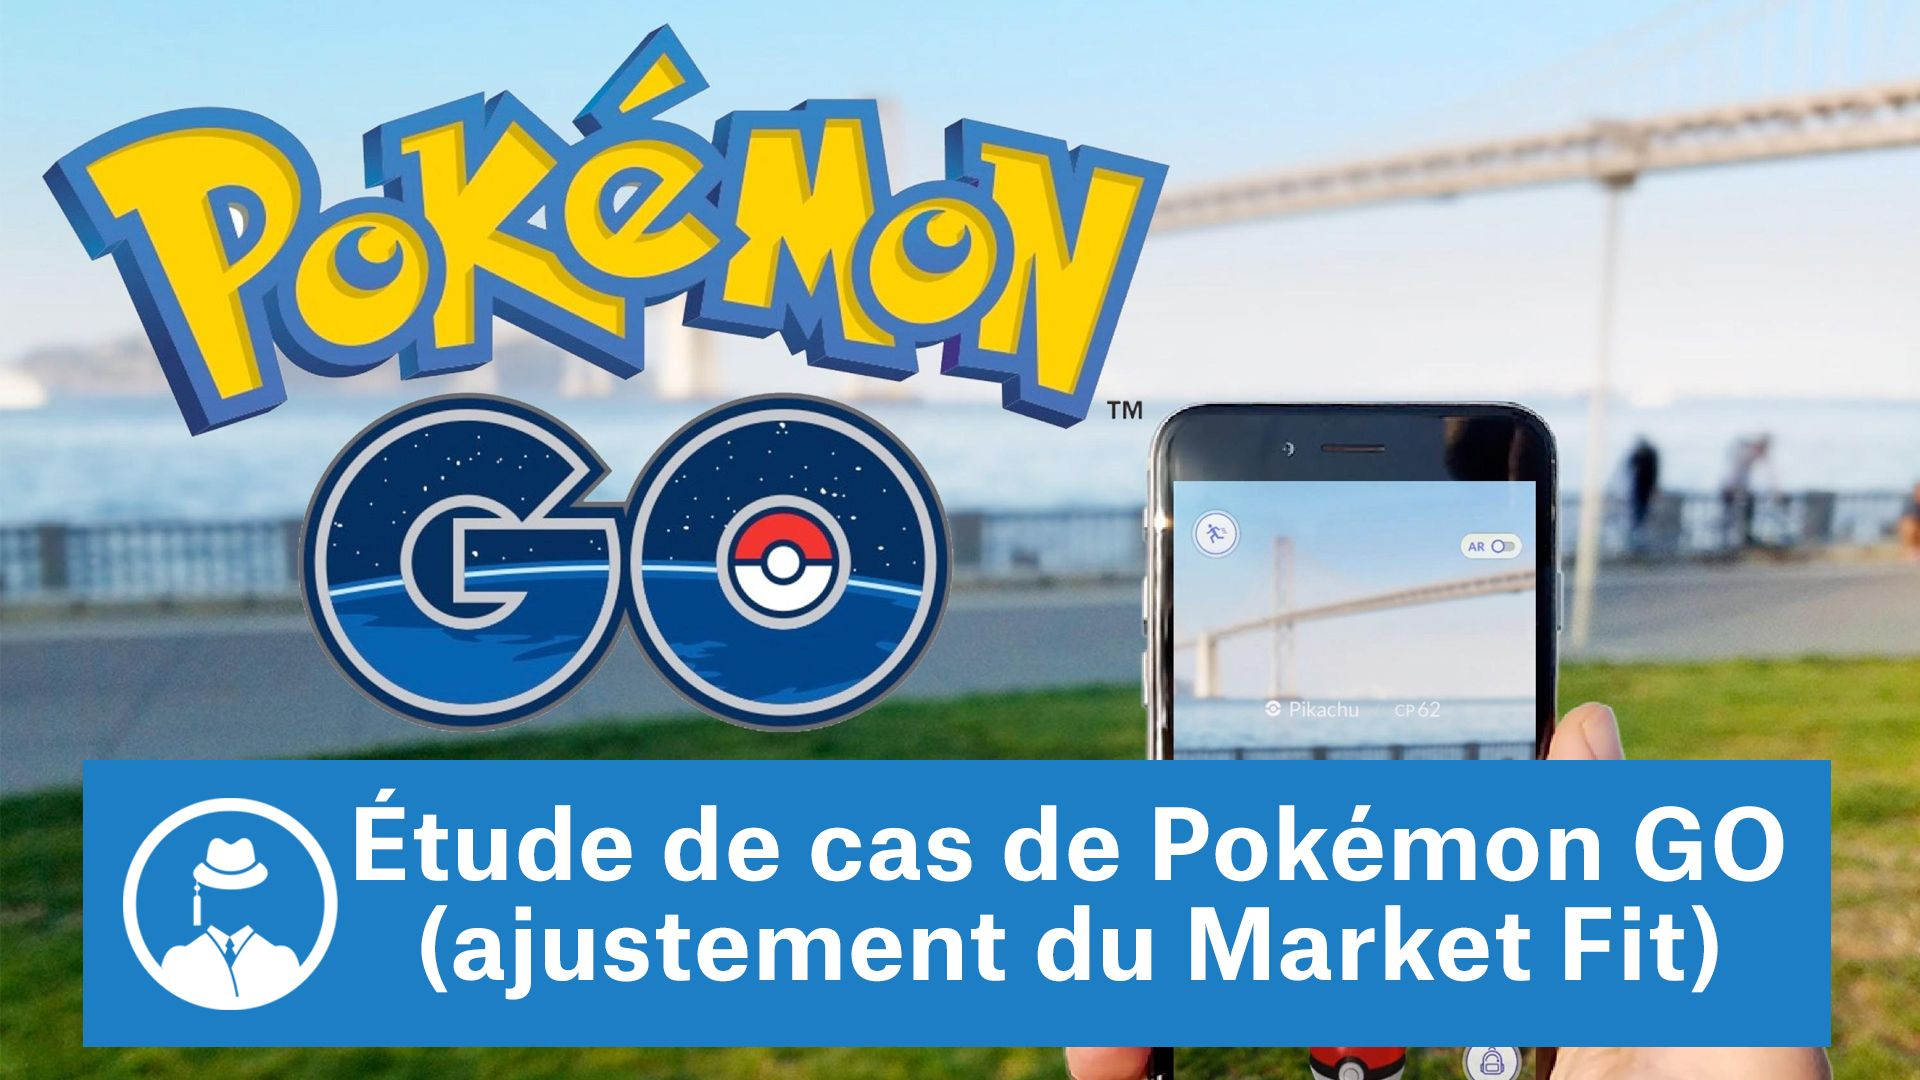 Étude de cas de Pokémon GO (ajustement du marché de produits) #GrowthHacking #WebMarketing #FormationGrowthHacking #CentreDeFormationFrance #TunnelAARRR #AARRR #SocialMedia #CommunityManagement #SEO #PokemonGO